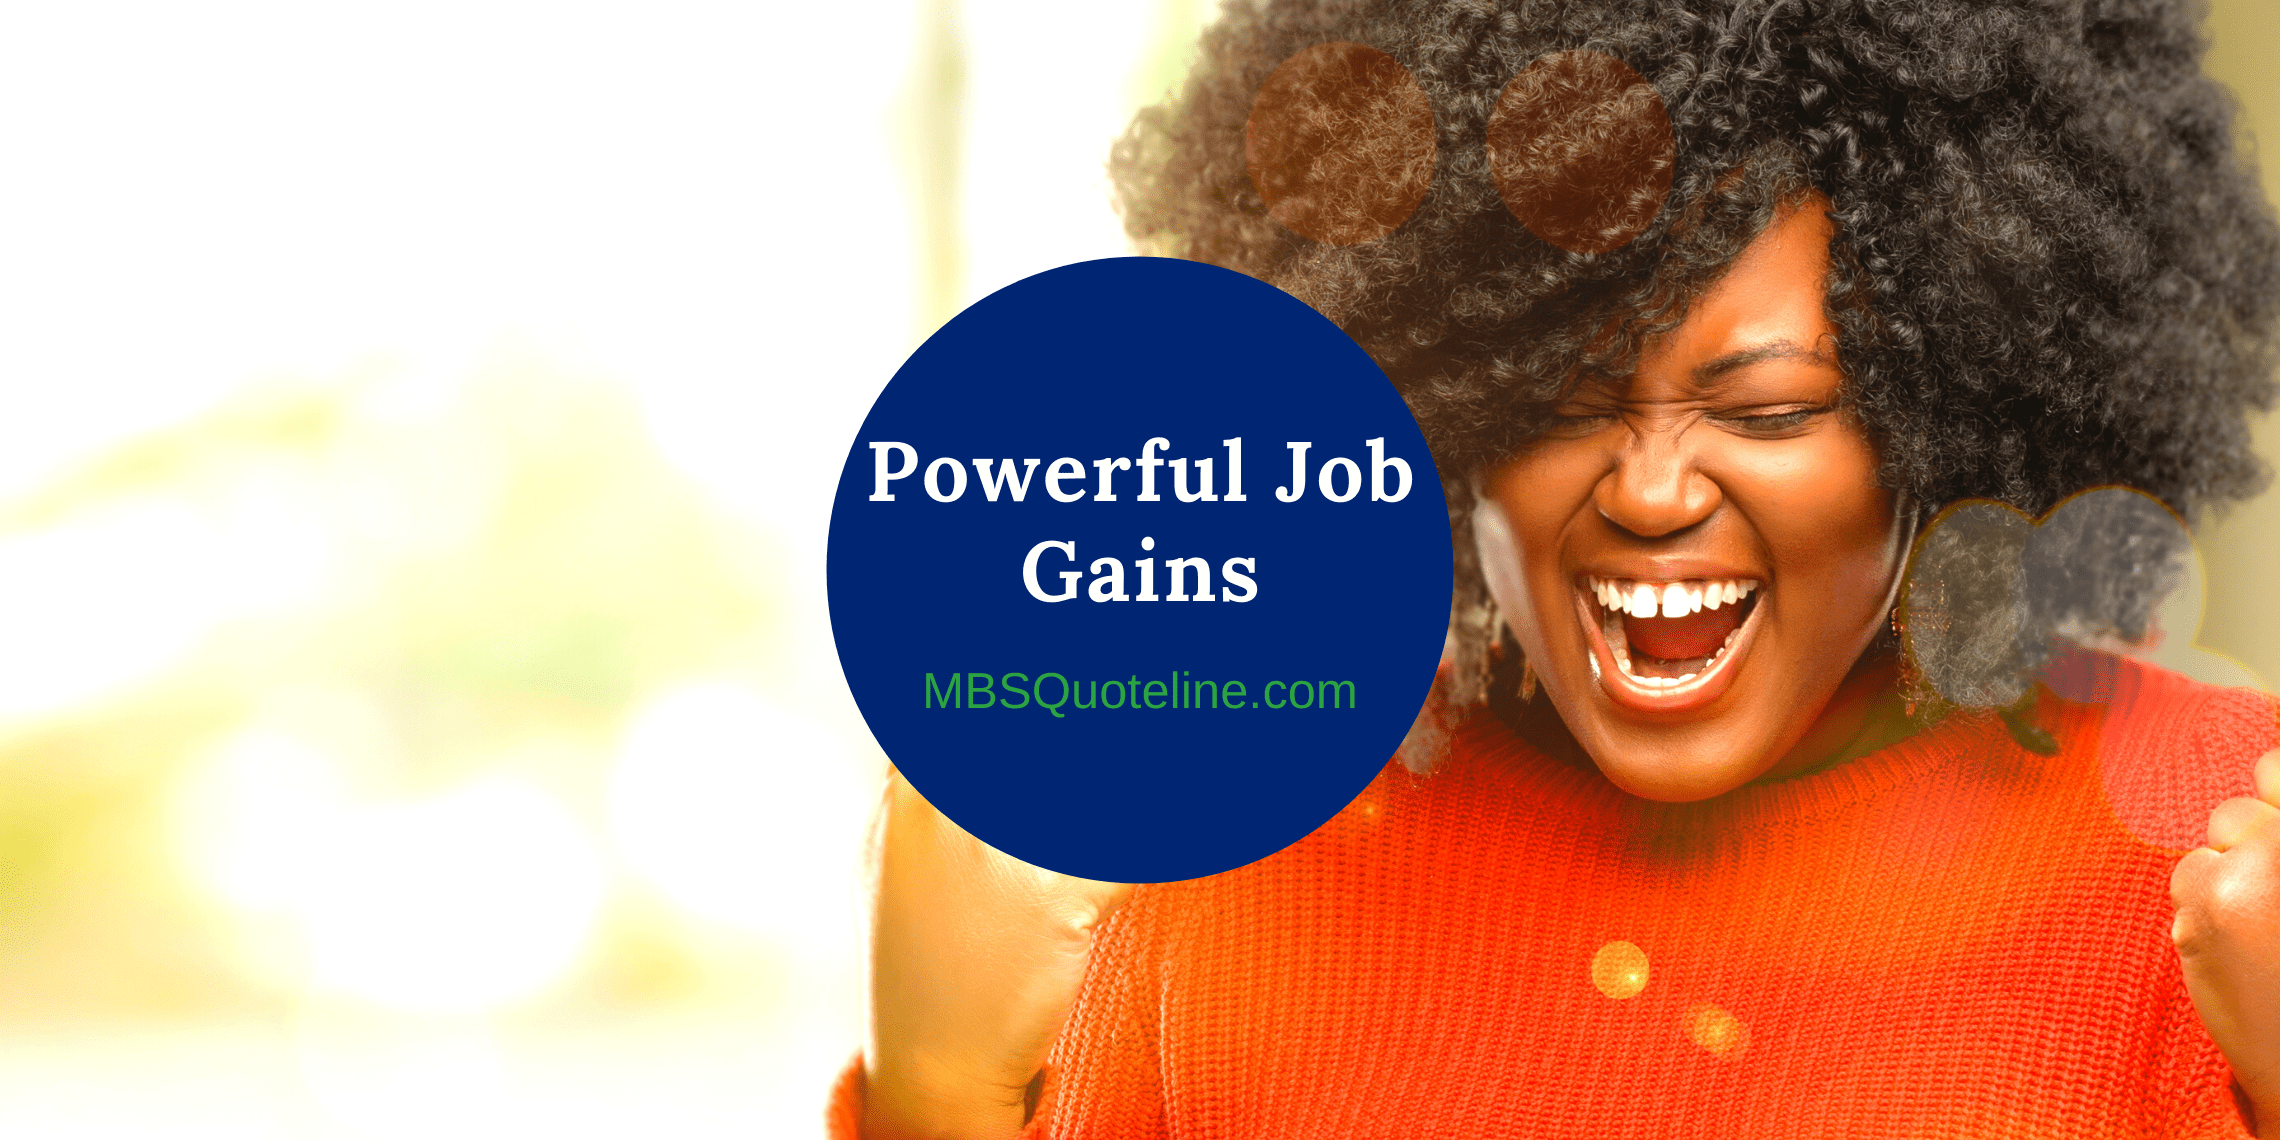 powerful job gains 2021 mortgage rates mbsquoteline featured